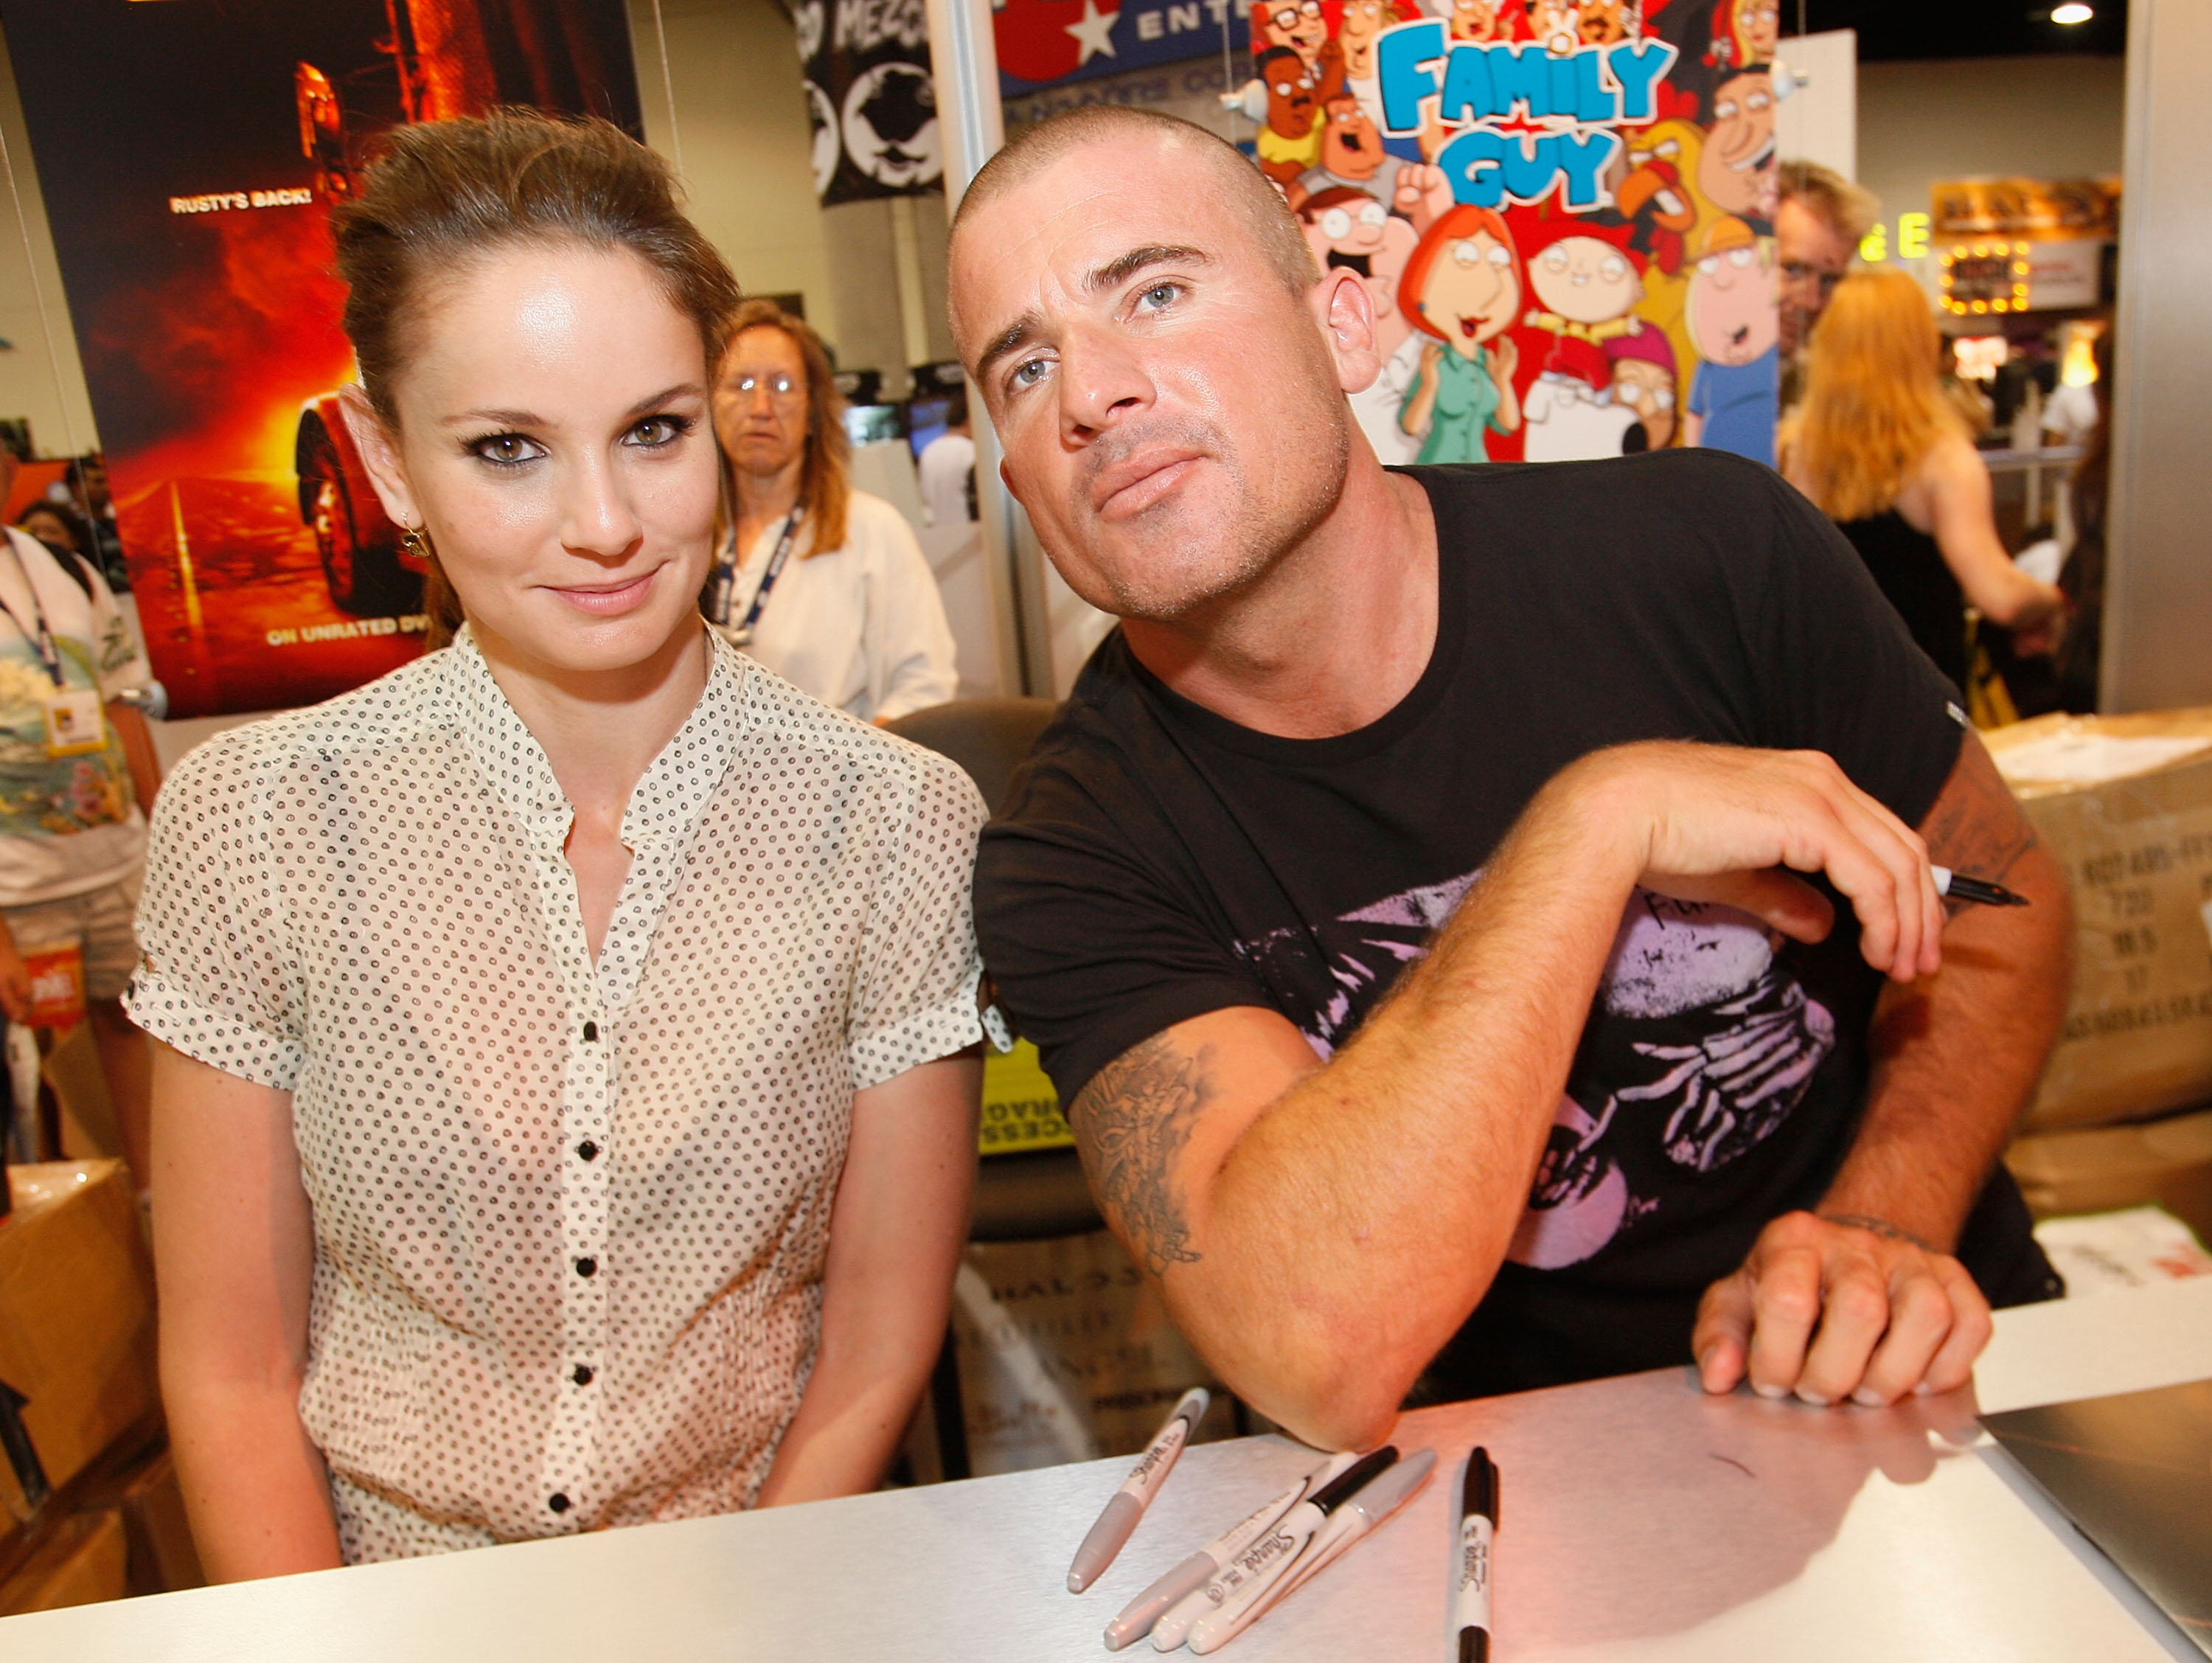 Sarah Wayne Callis and Dominic Purcell at Comic Con 2008